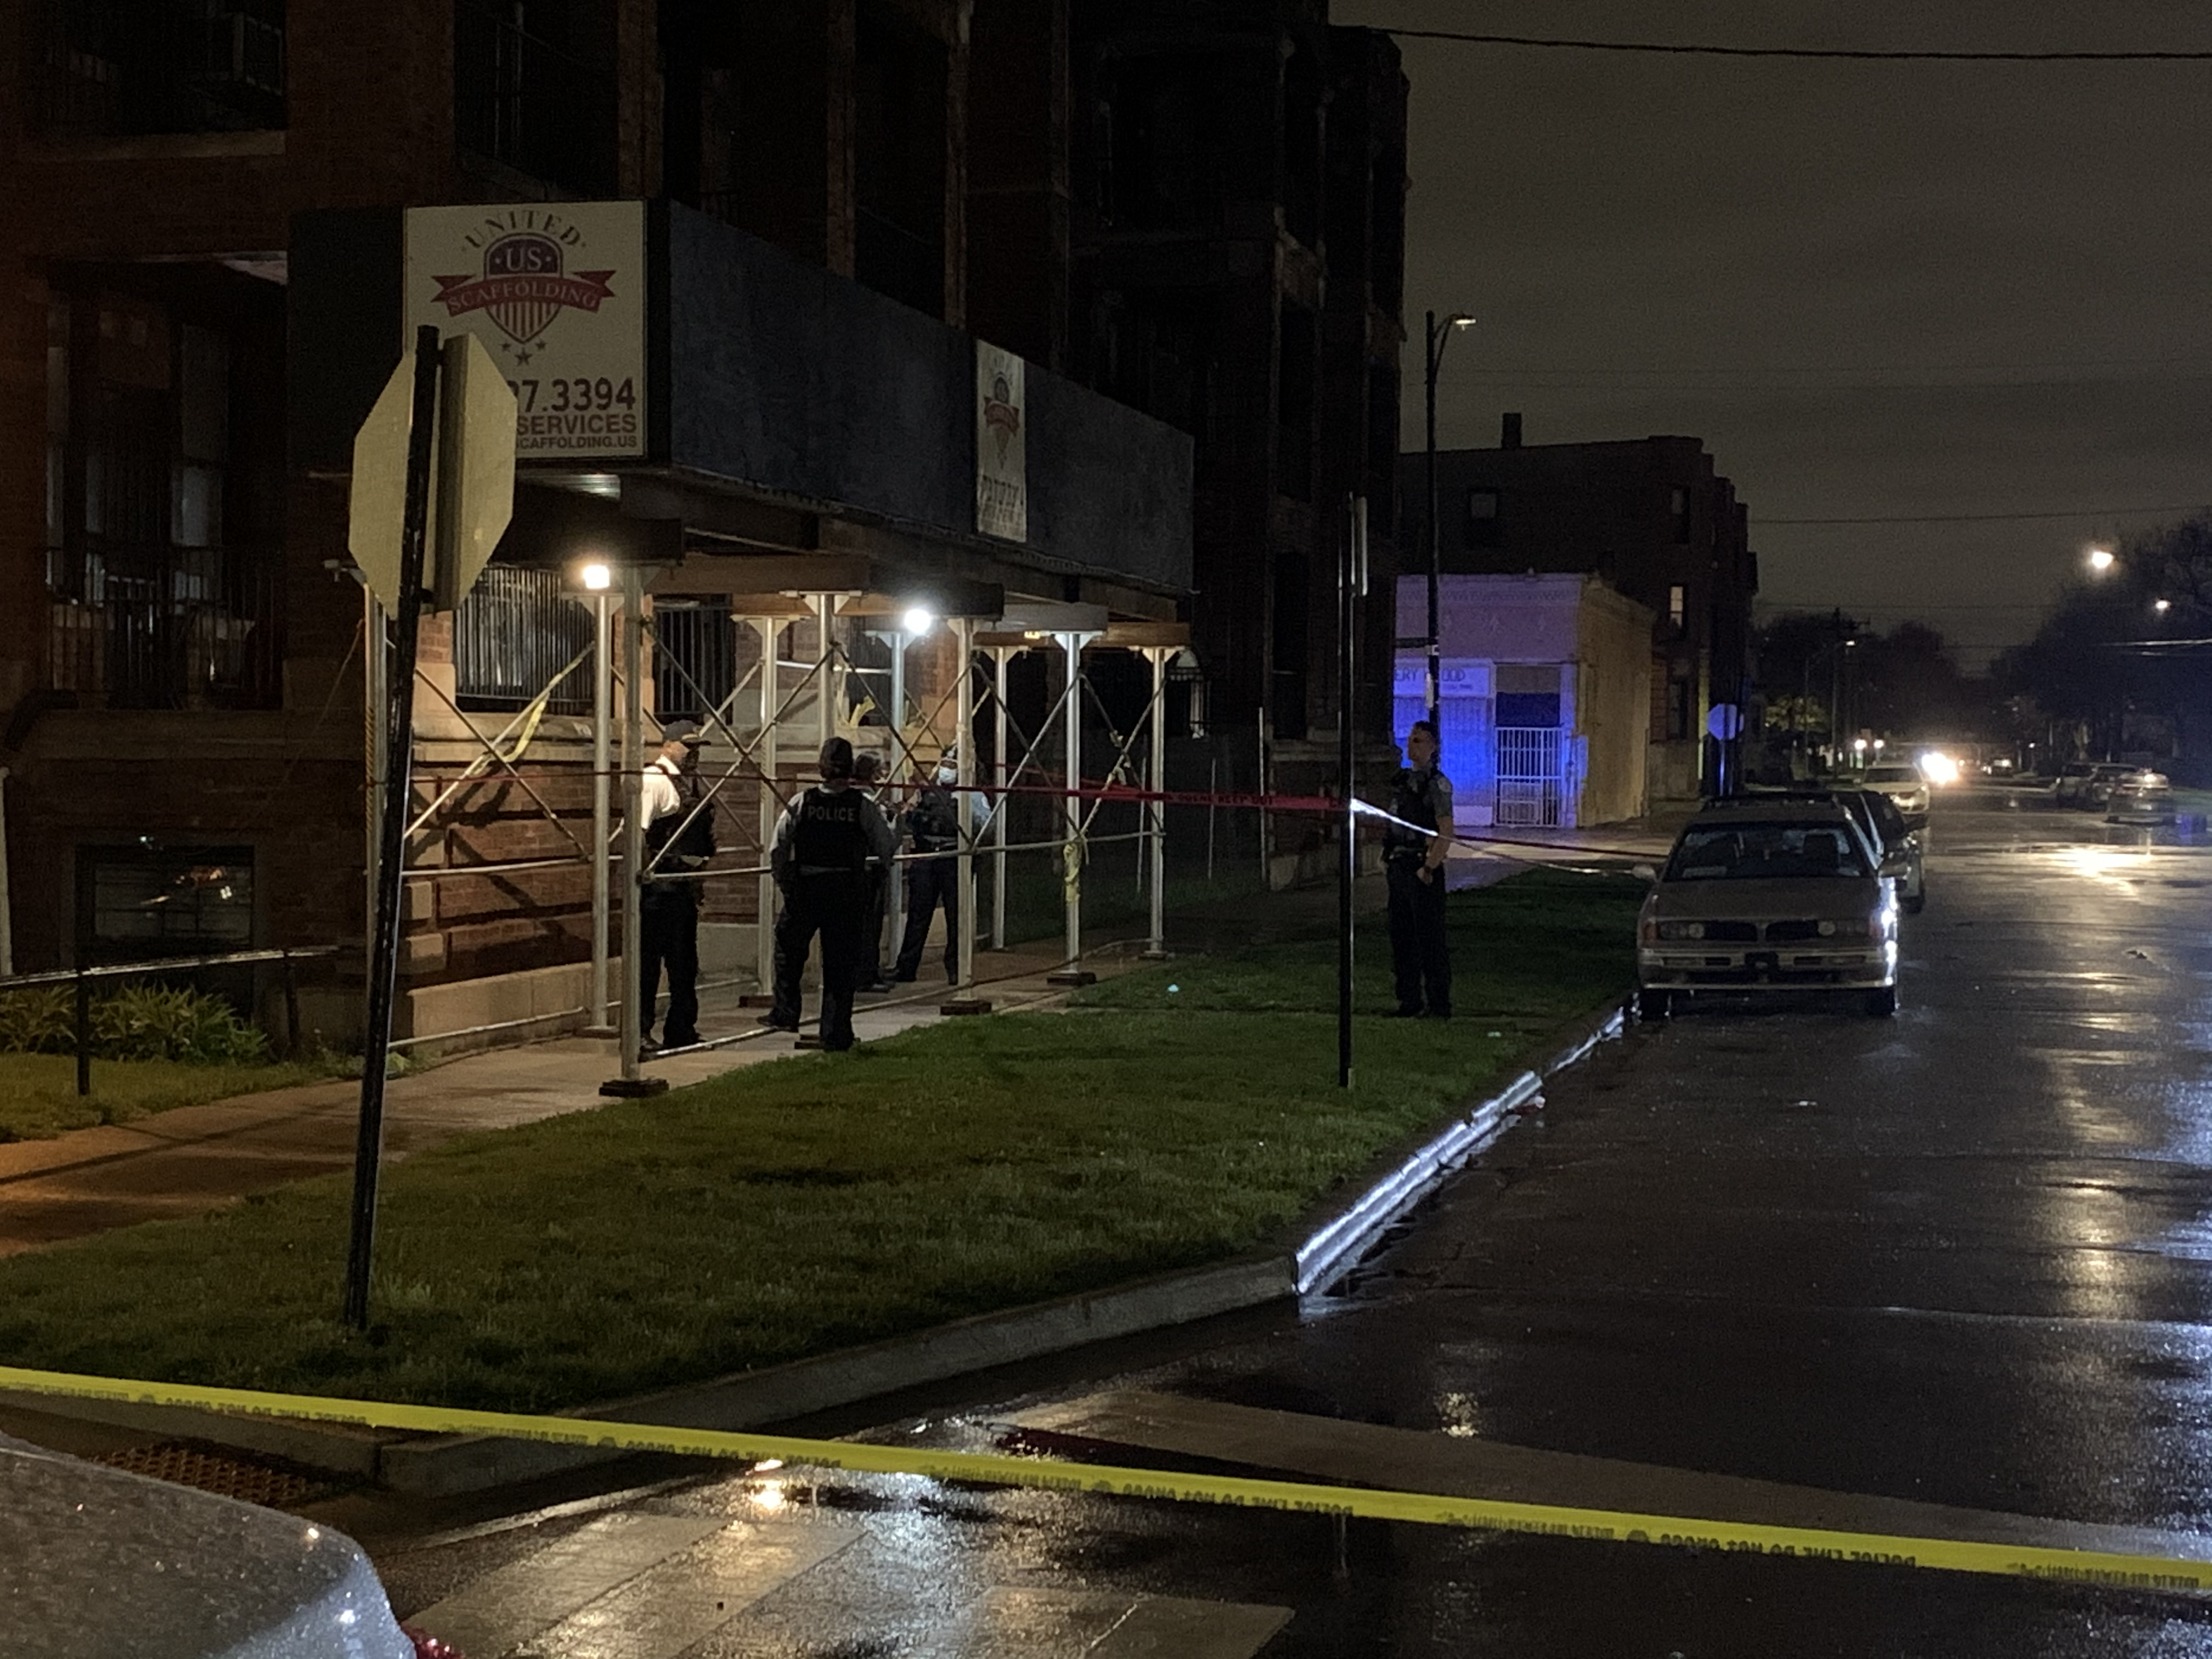 Police investigate the scene where a man was shot to death April 28, 2020 in Park Manor.